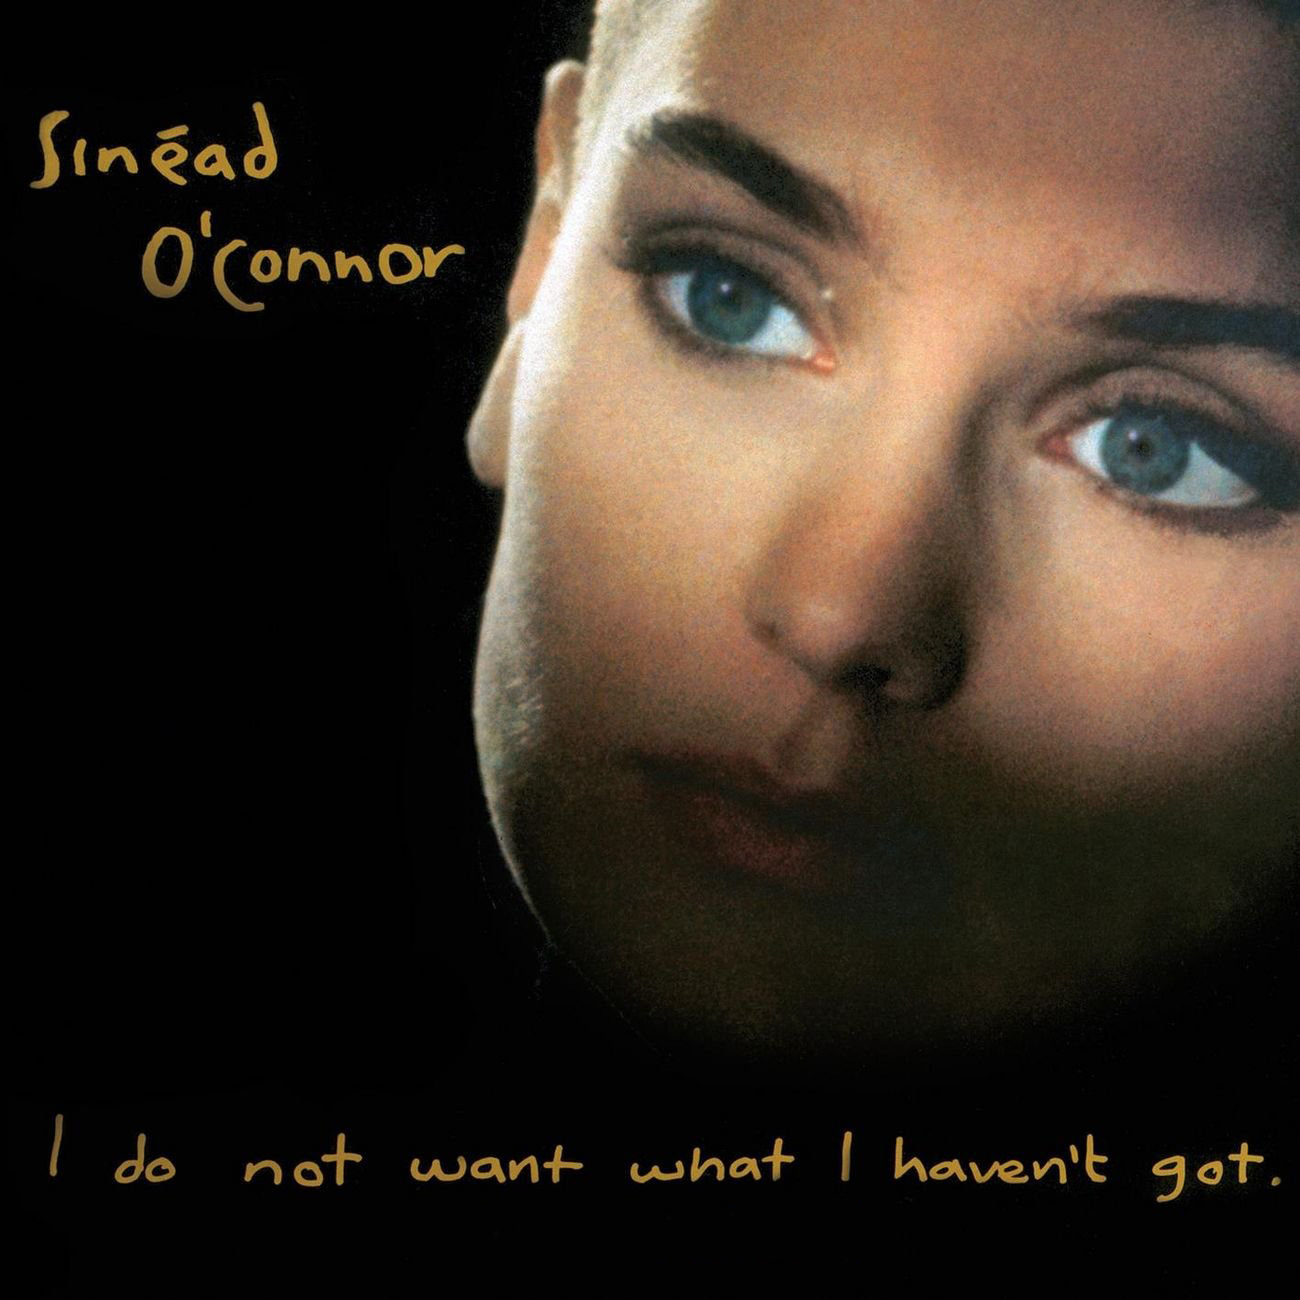 Sinéad O'Connor, I Do Not Want What I Haven't Got